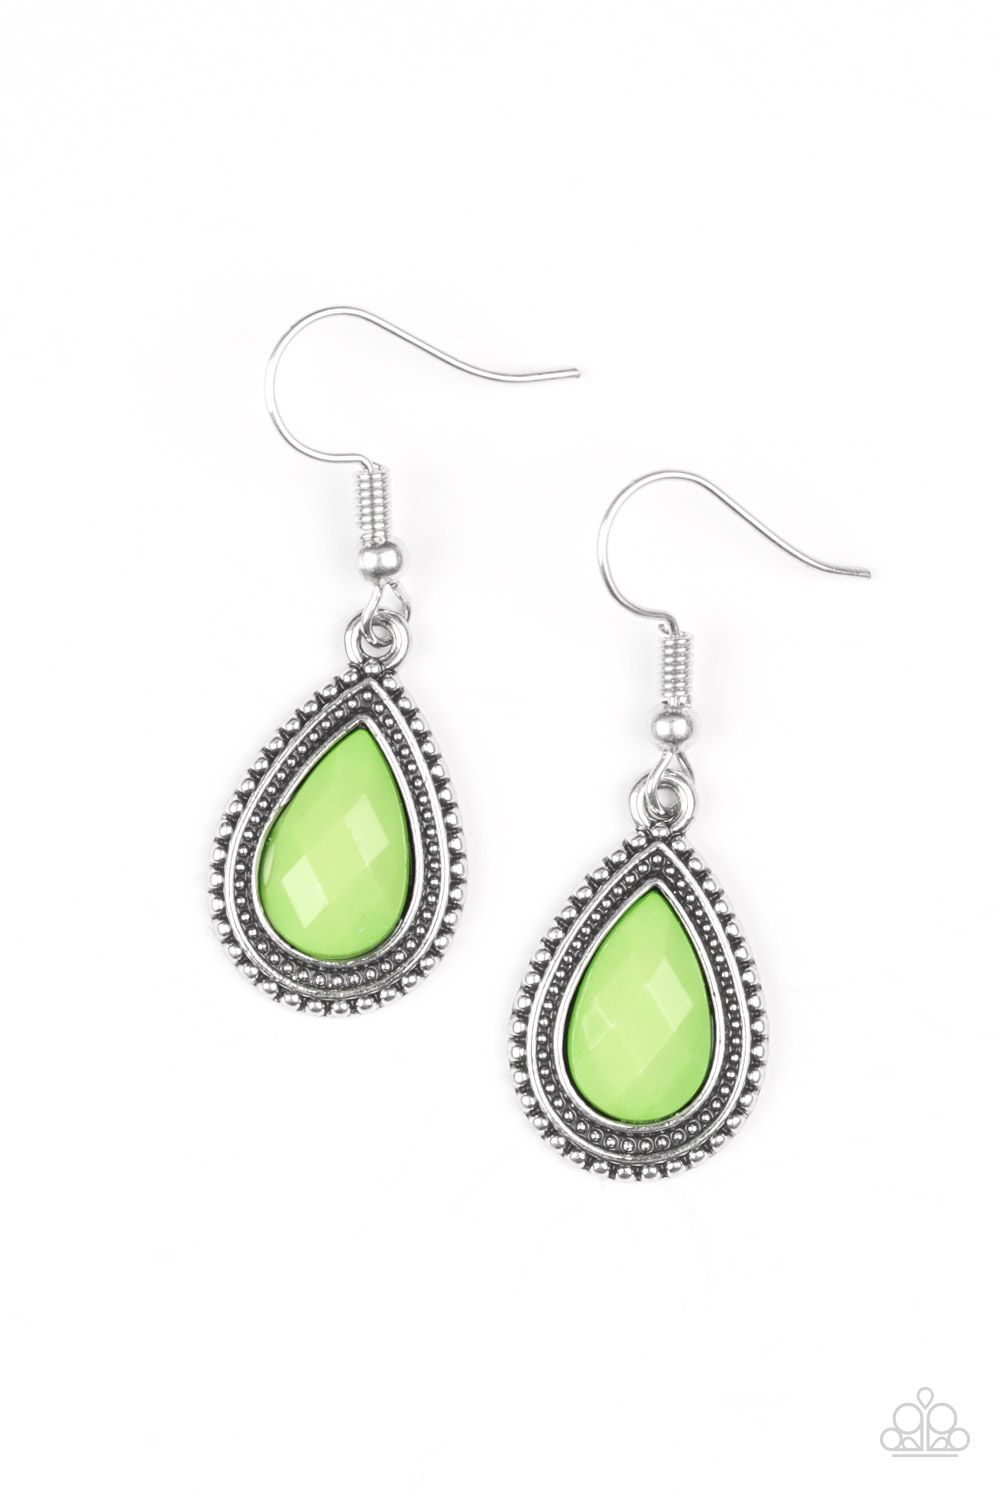 Paparazzi Accessories Summer Vacay - Green Earring - Be Adored Jewelry